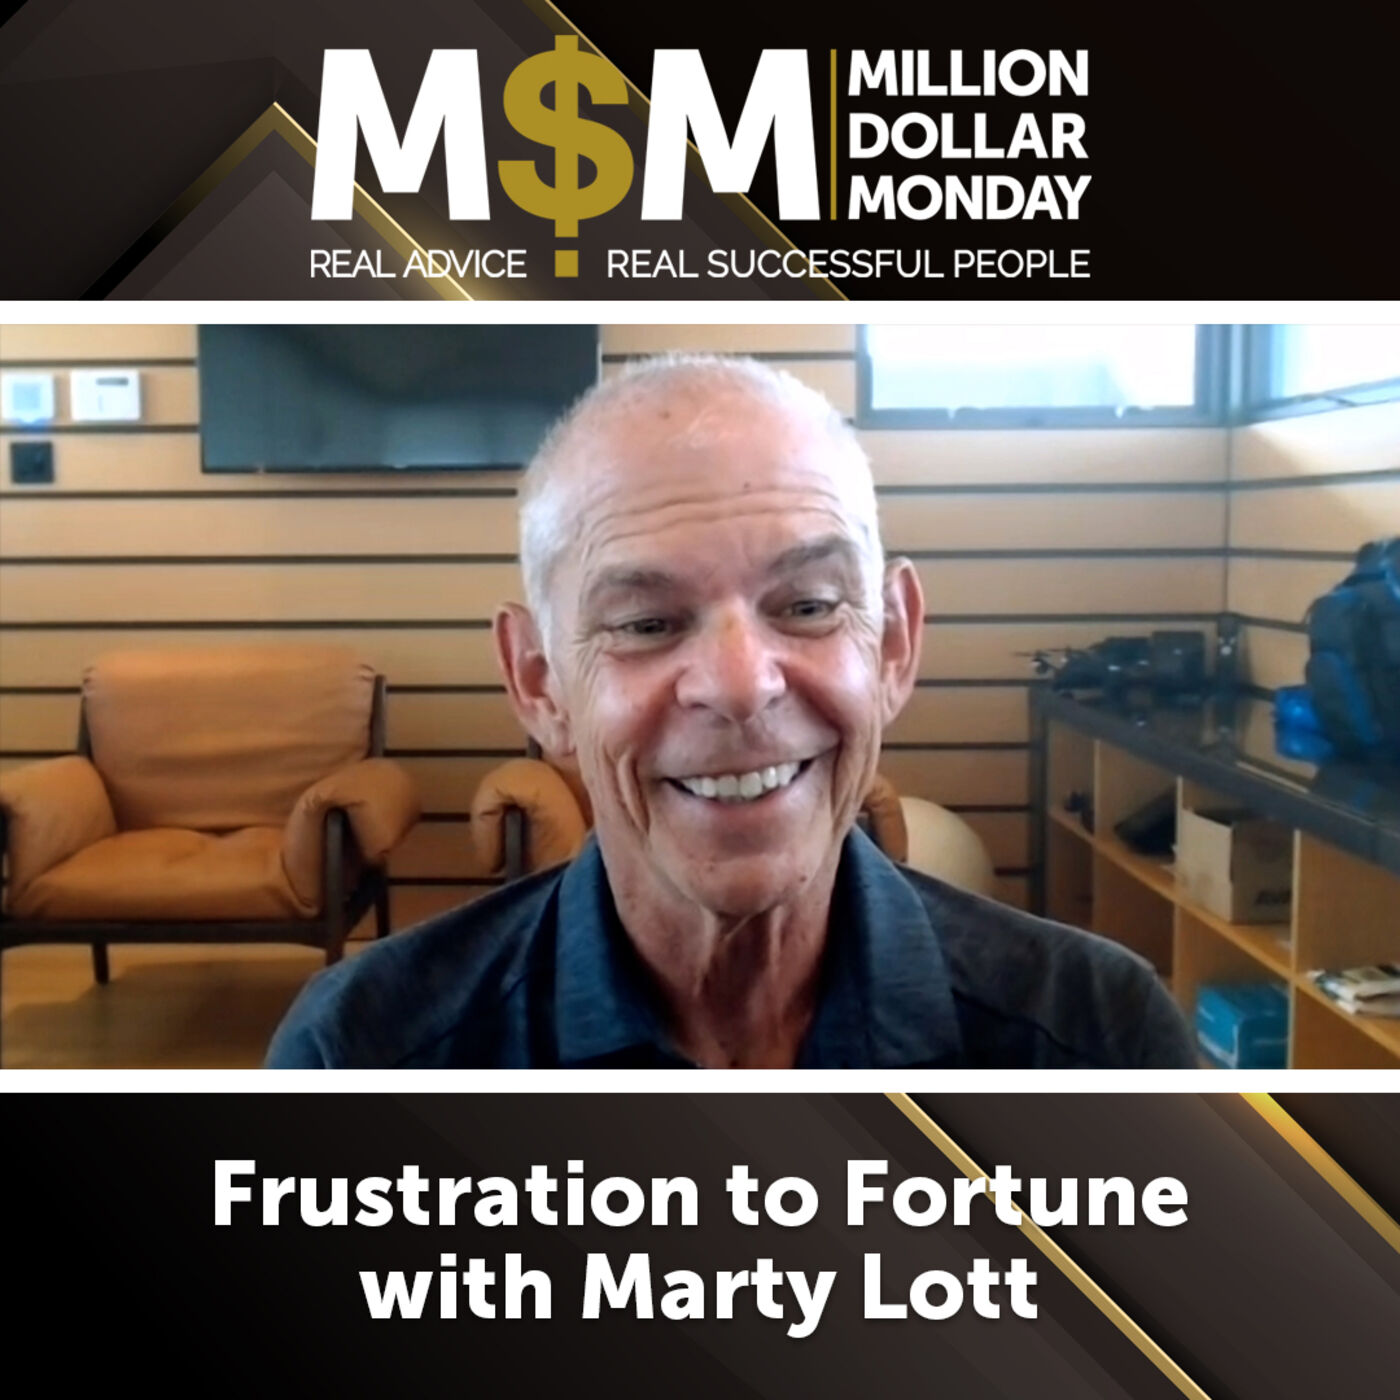 Frustration to Fortune with Marty Lott